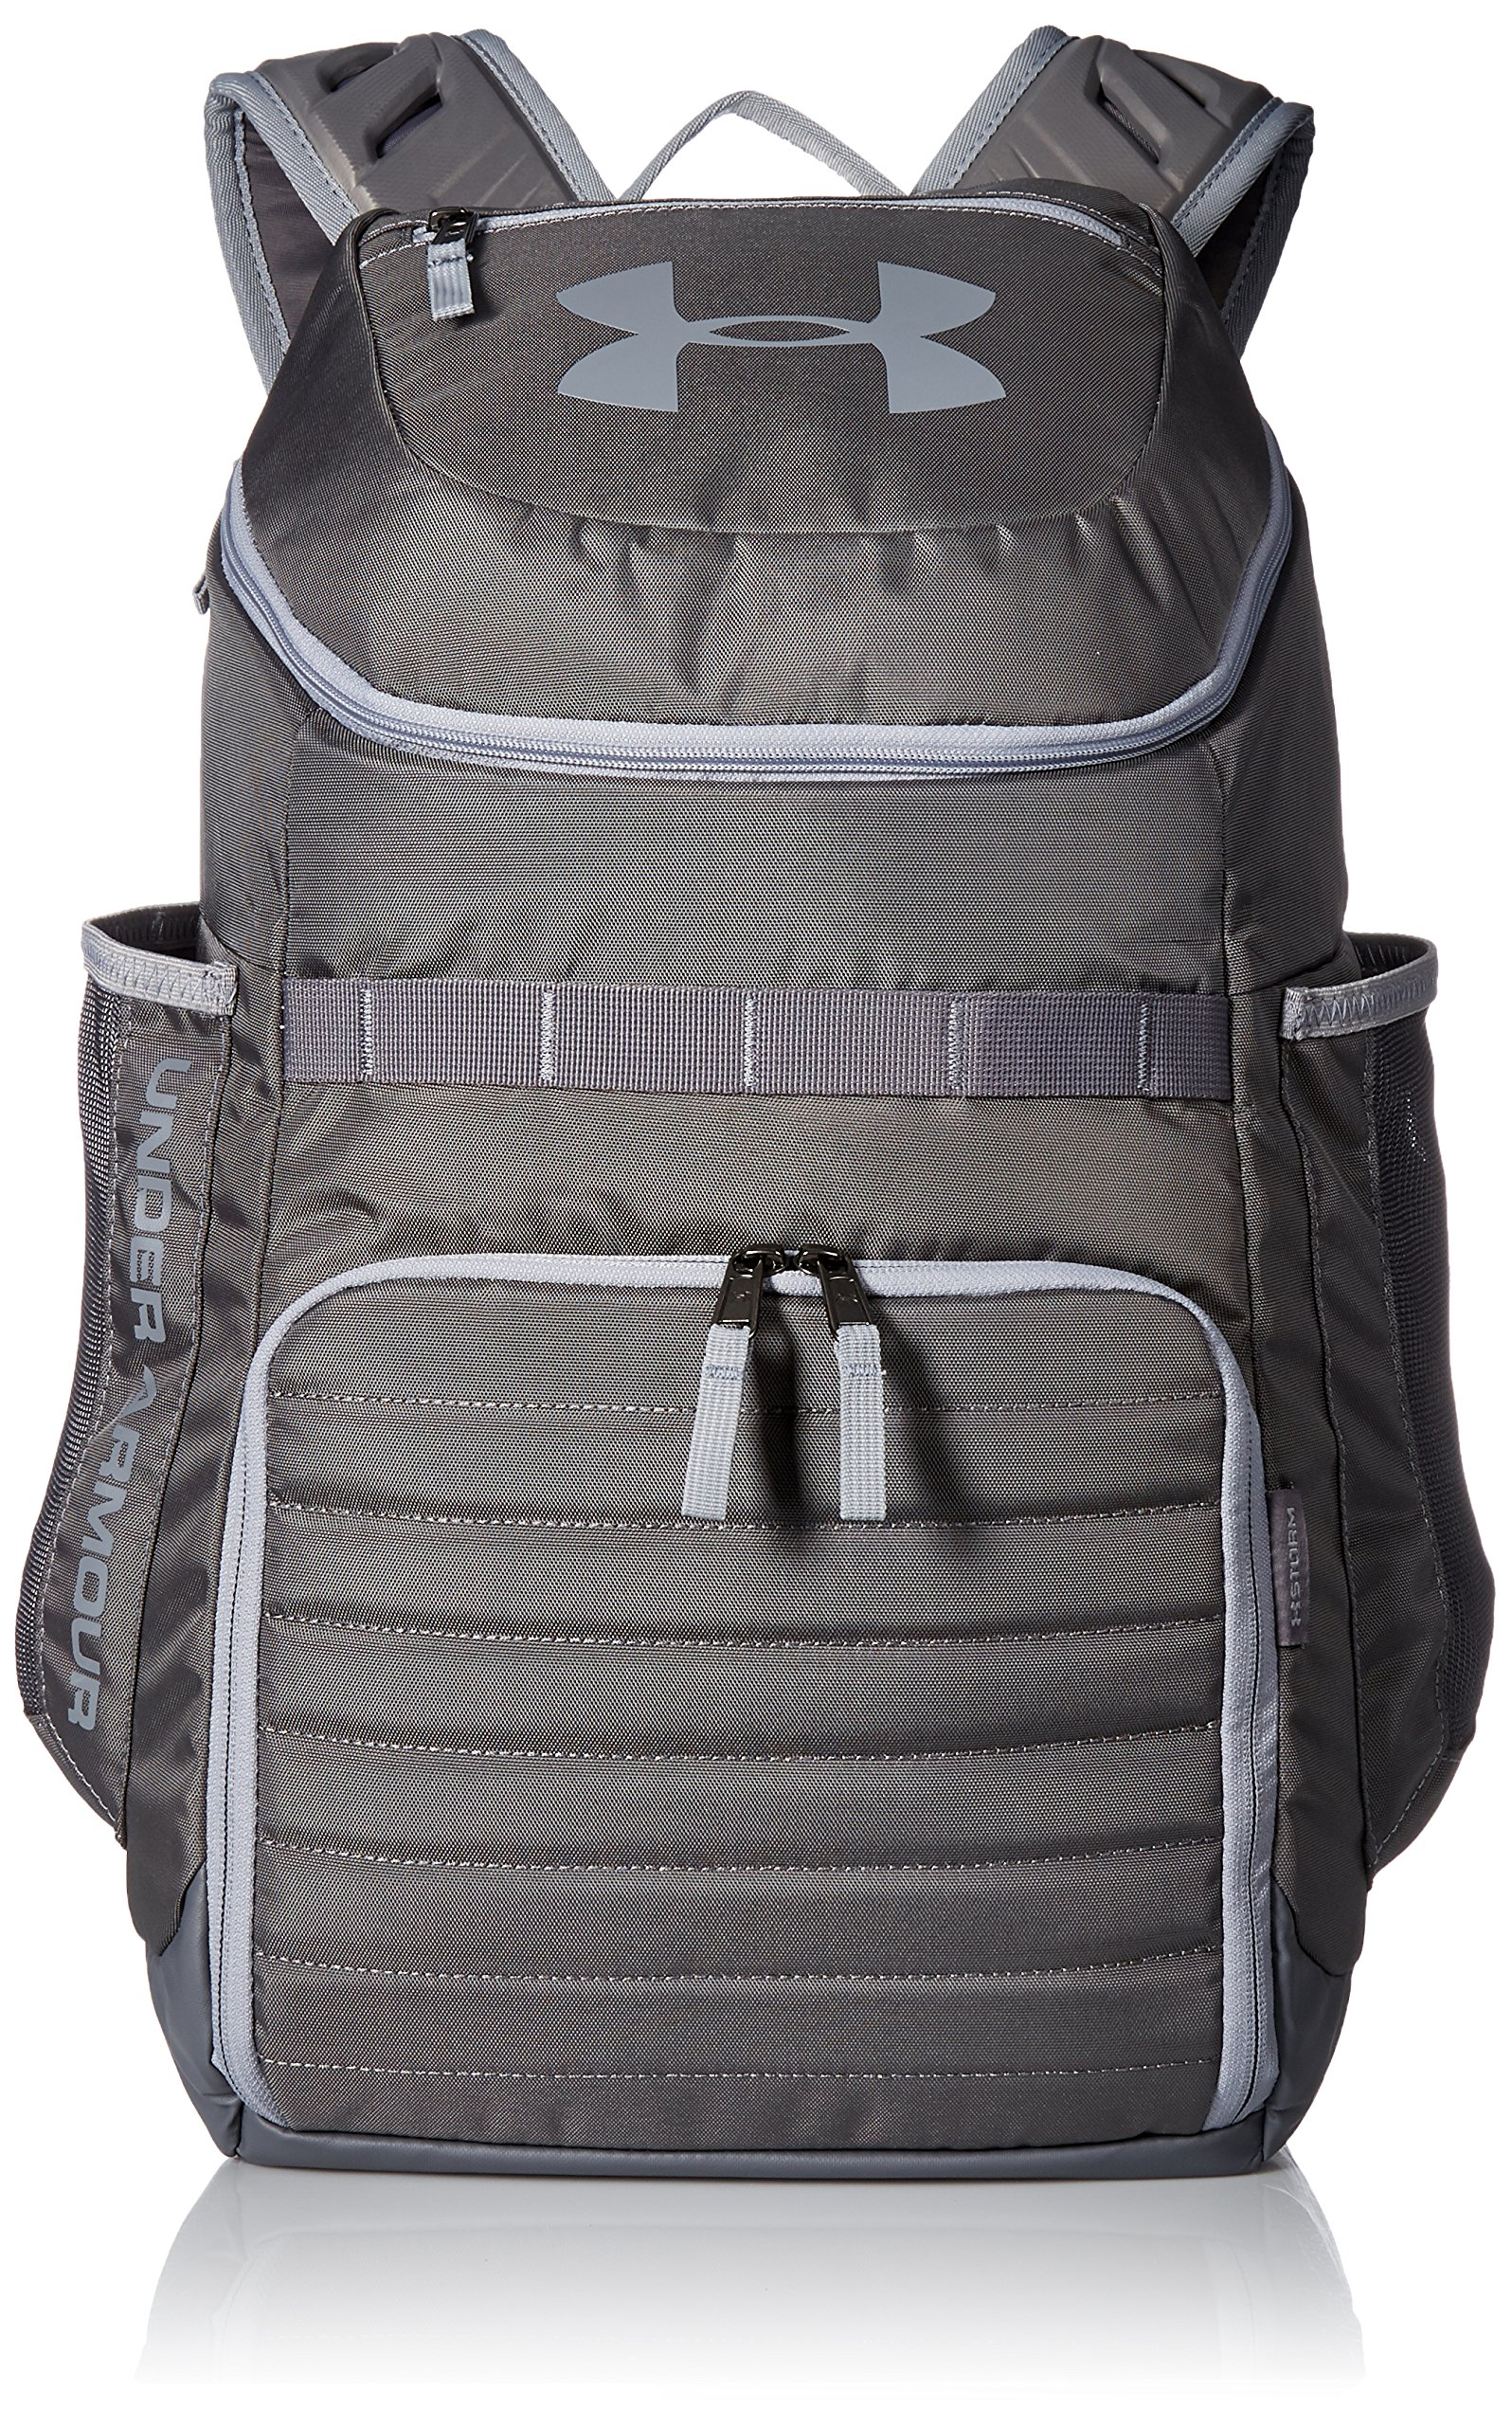 Under Armour Undeniable 3.0 Backpack,Graphite (040)/Steel, One Size